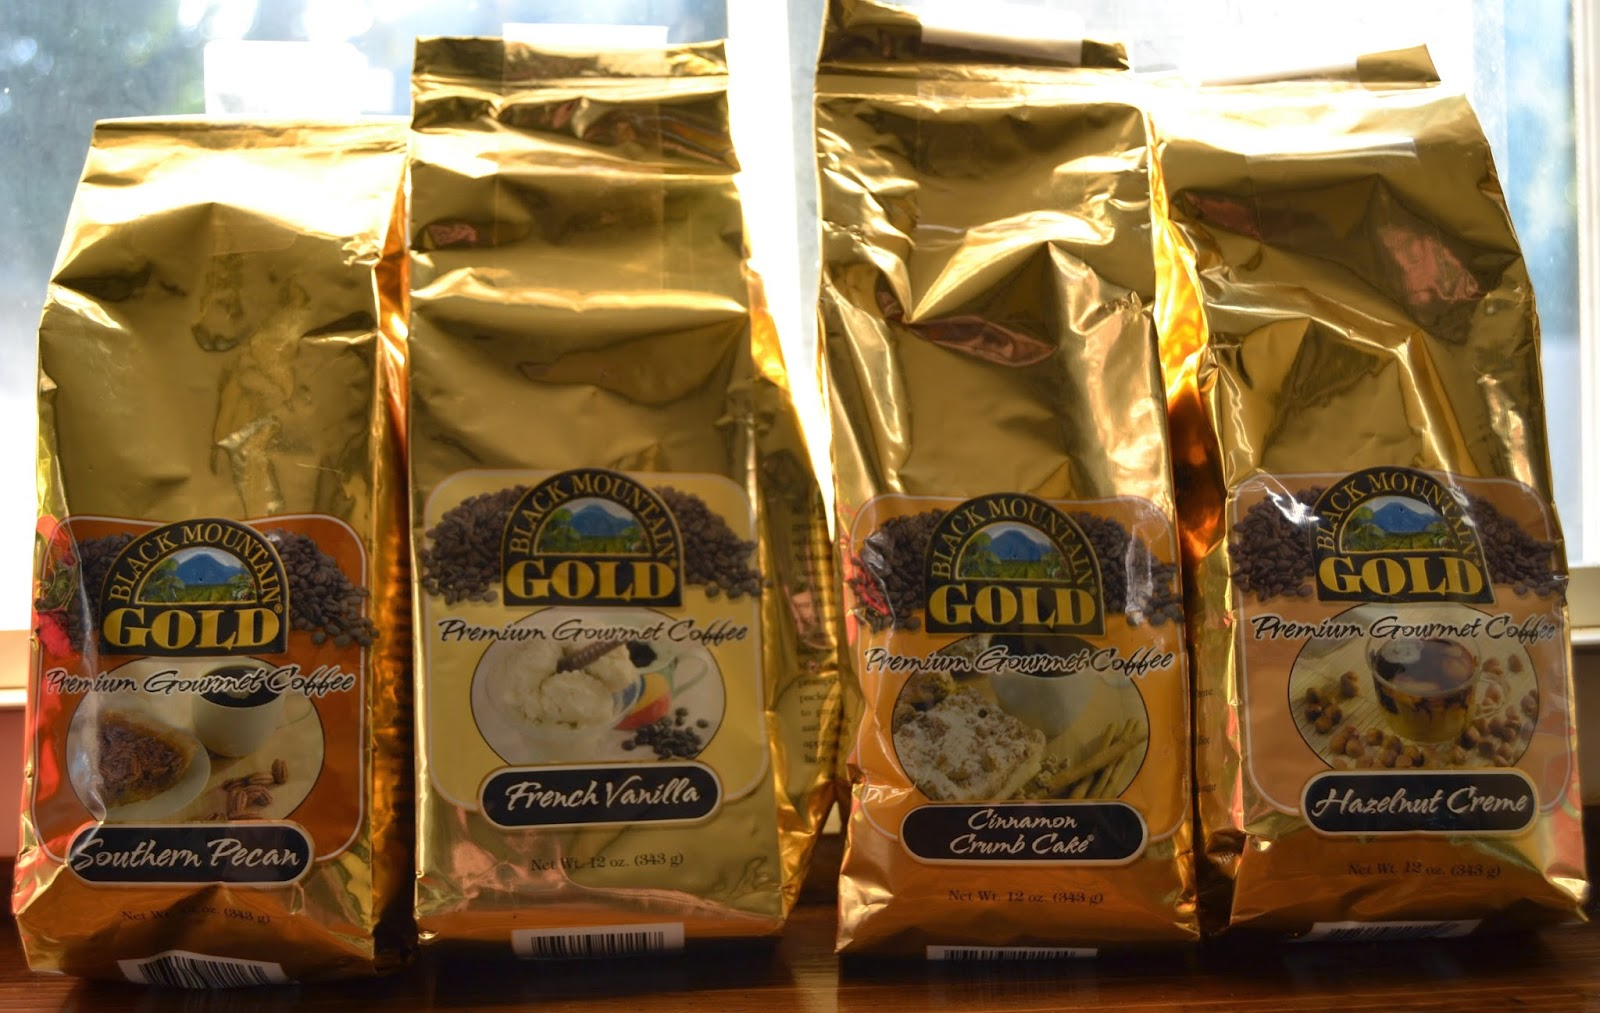 Black Mountain Gold Coffee